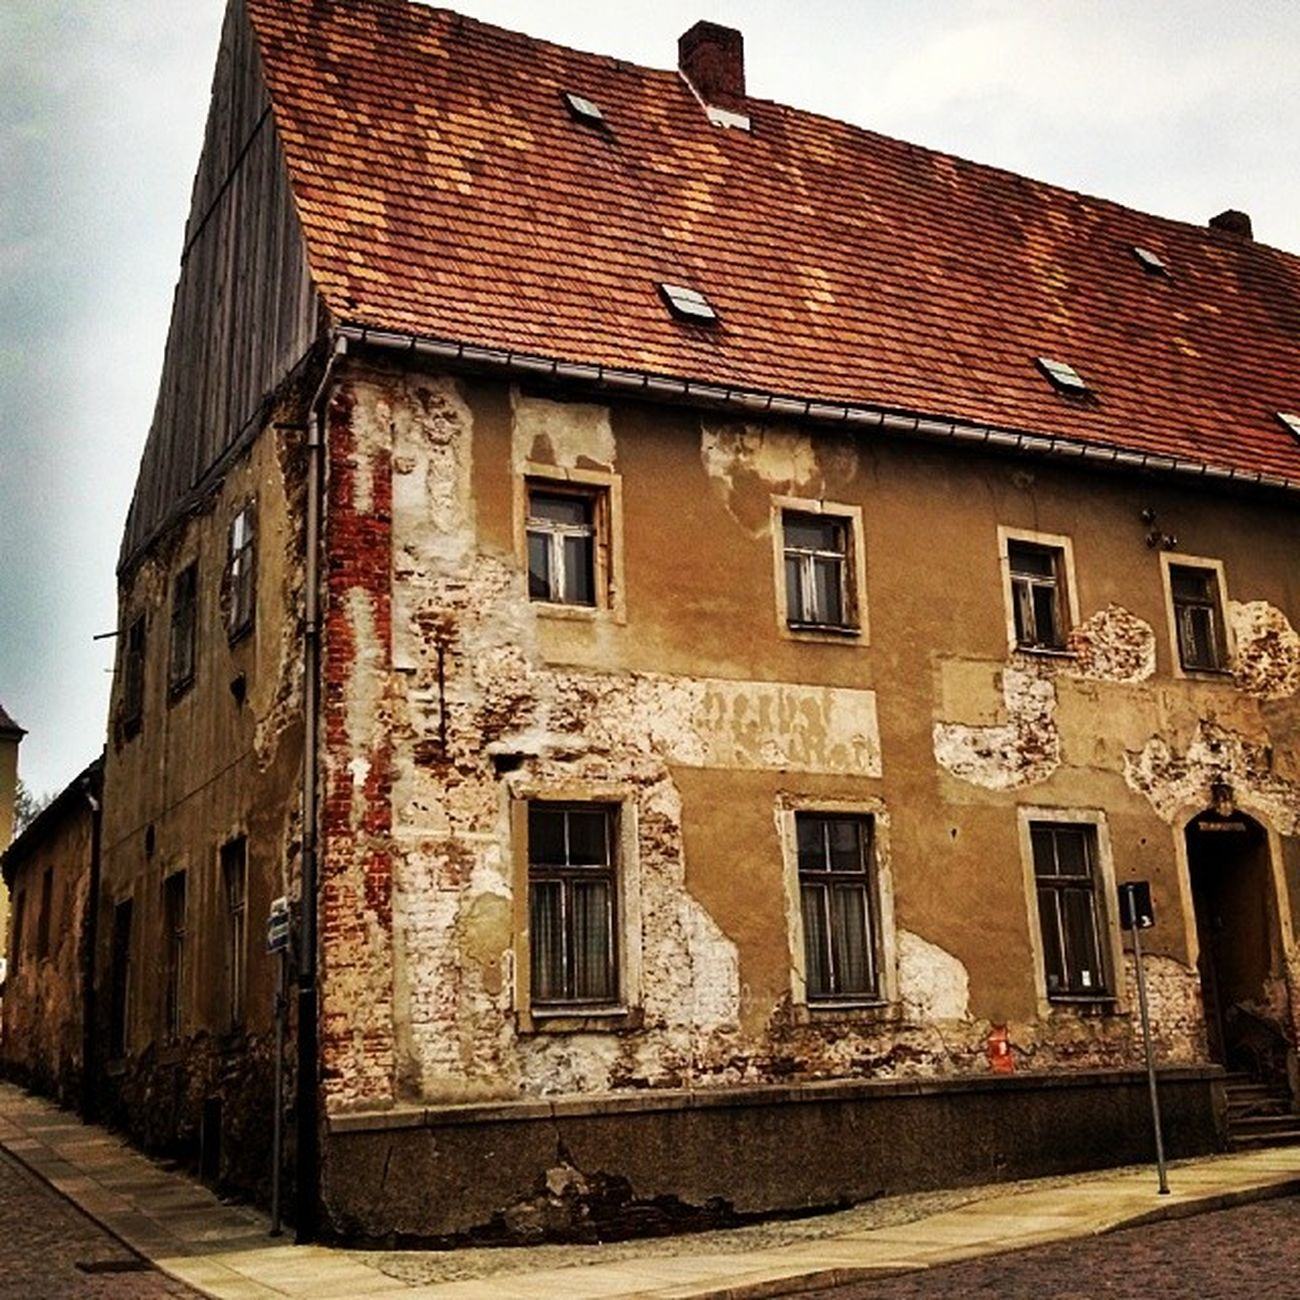 Back in the DDR times again. It looks like Eastgermany , before the wall falls down. Not renovated House in Freiberg Germany Deutschland Oldcity Ig_deutschland Instagermany